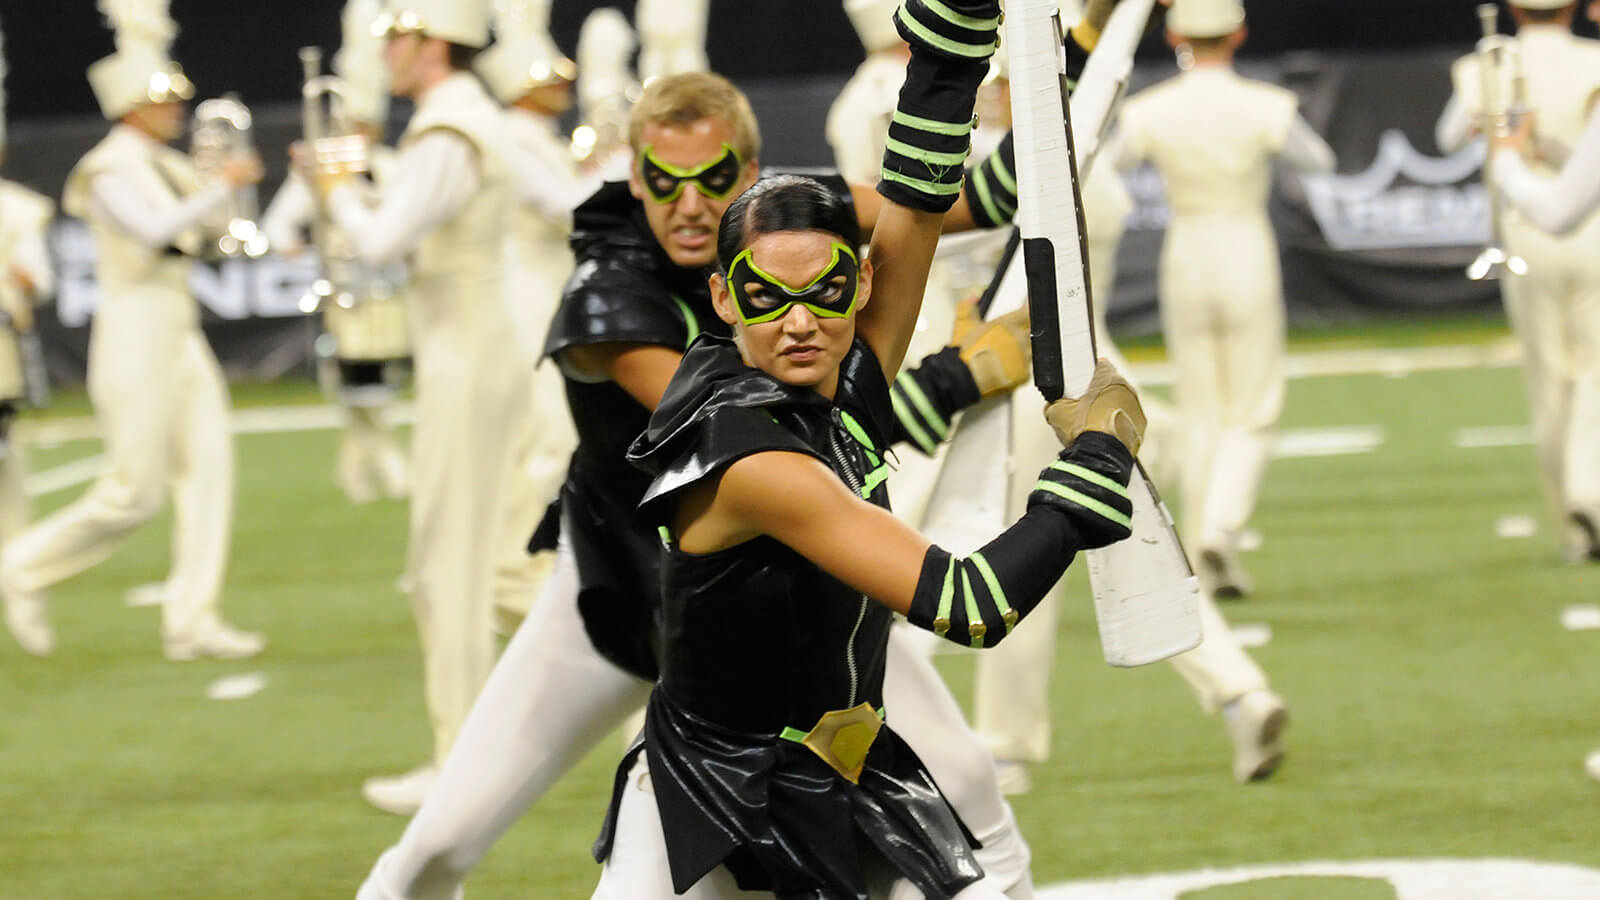 Spotlight of the Week: 2012 Carolina Crown, 'For the Common Good'